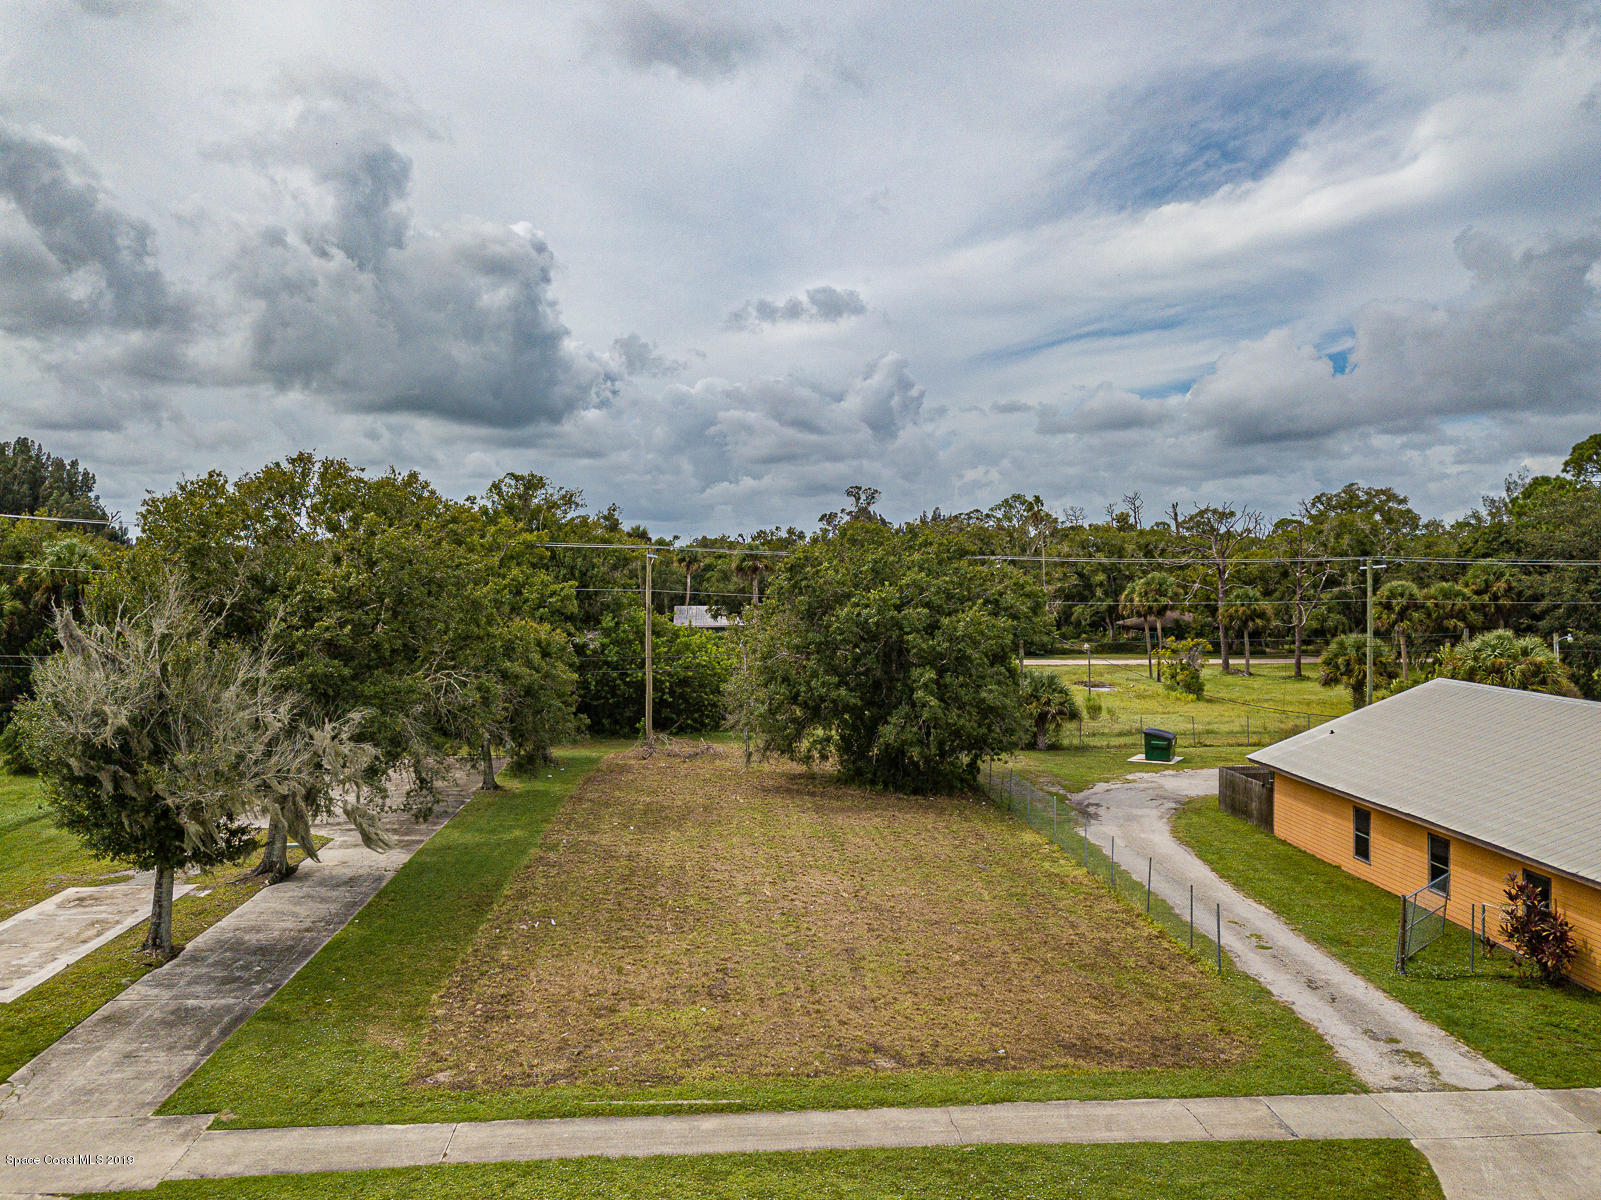 118 N Broadway Street, Fellsmere, FL 32948 - Fellsmere, FL real estate listing